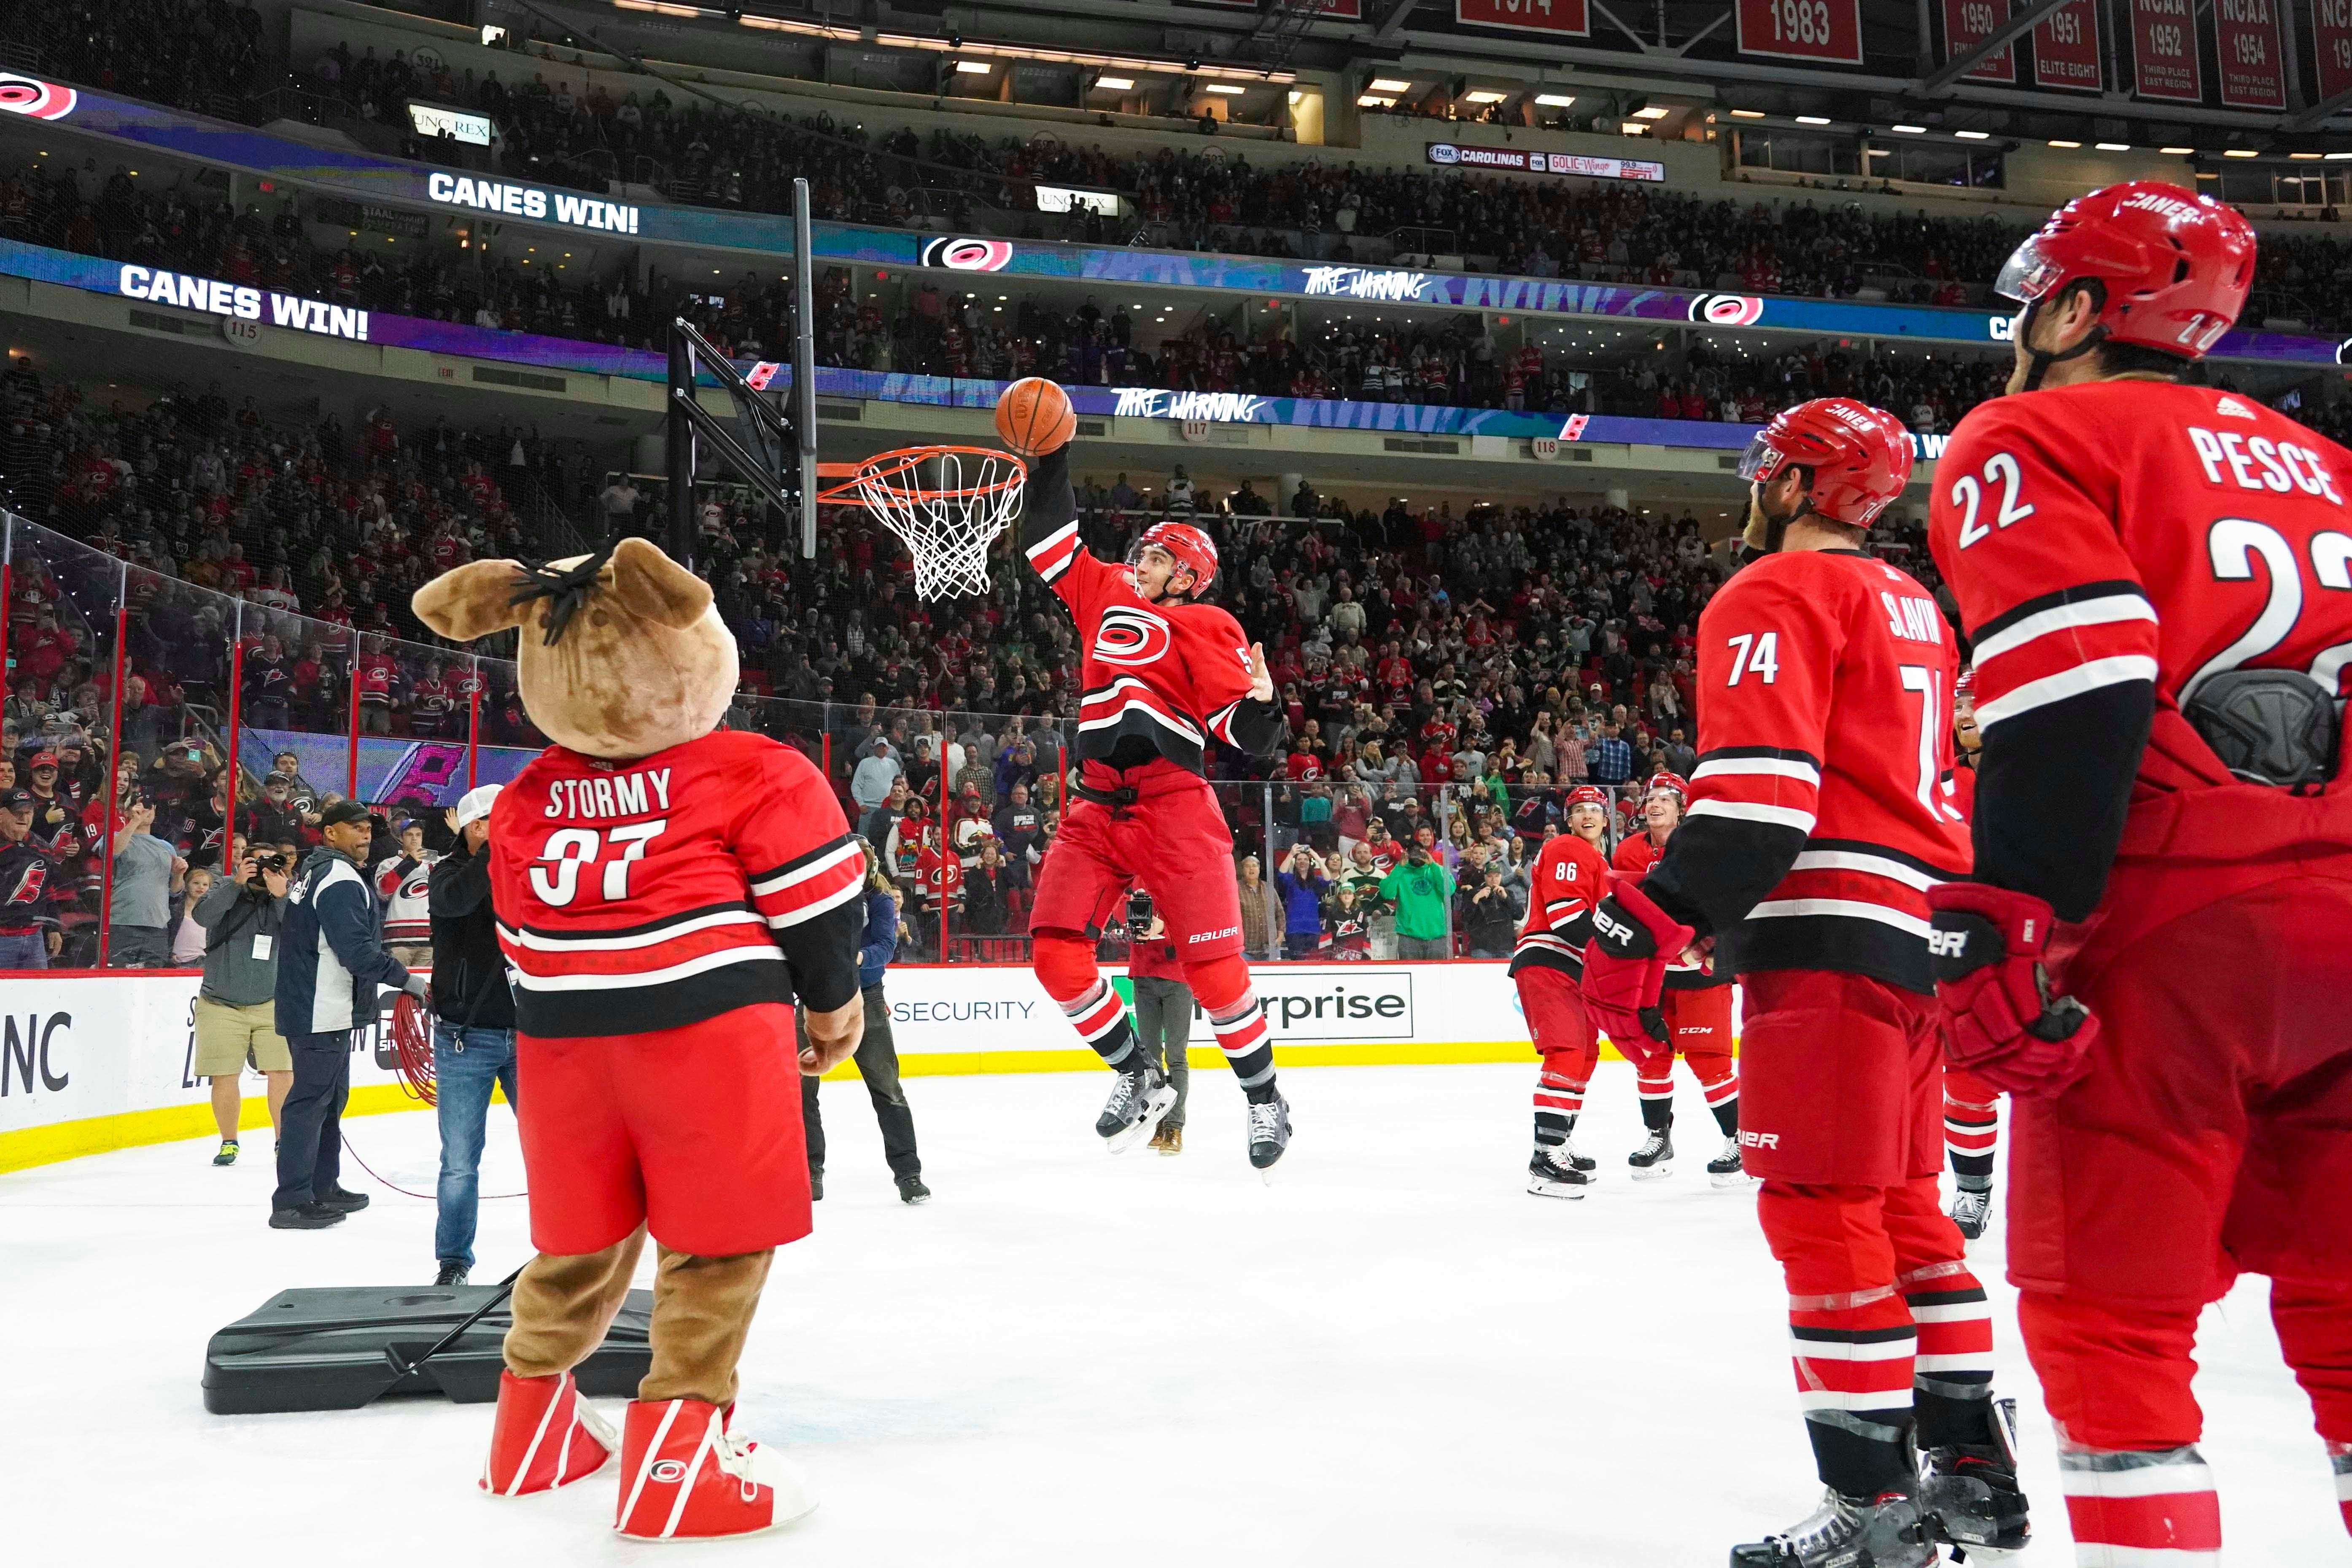 March Madness on skates: Carolina Hurricanes celebrate victory with a slam dunk